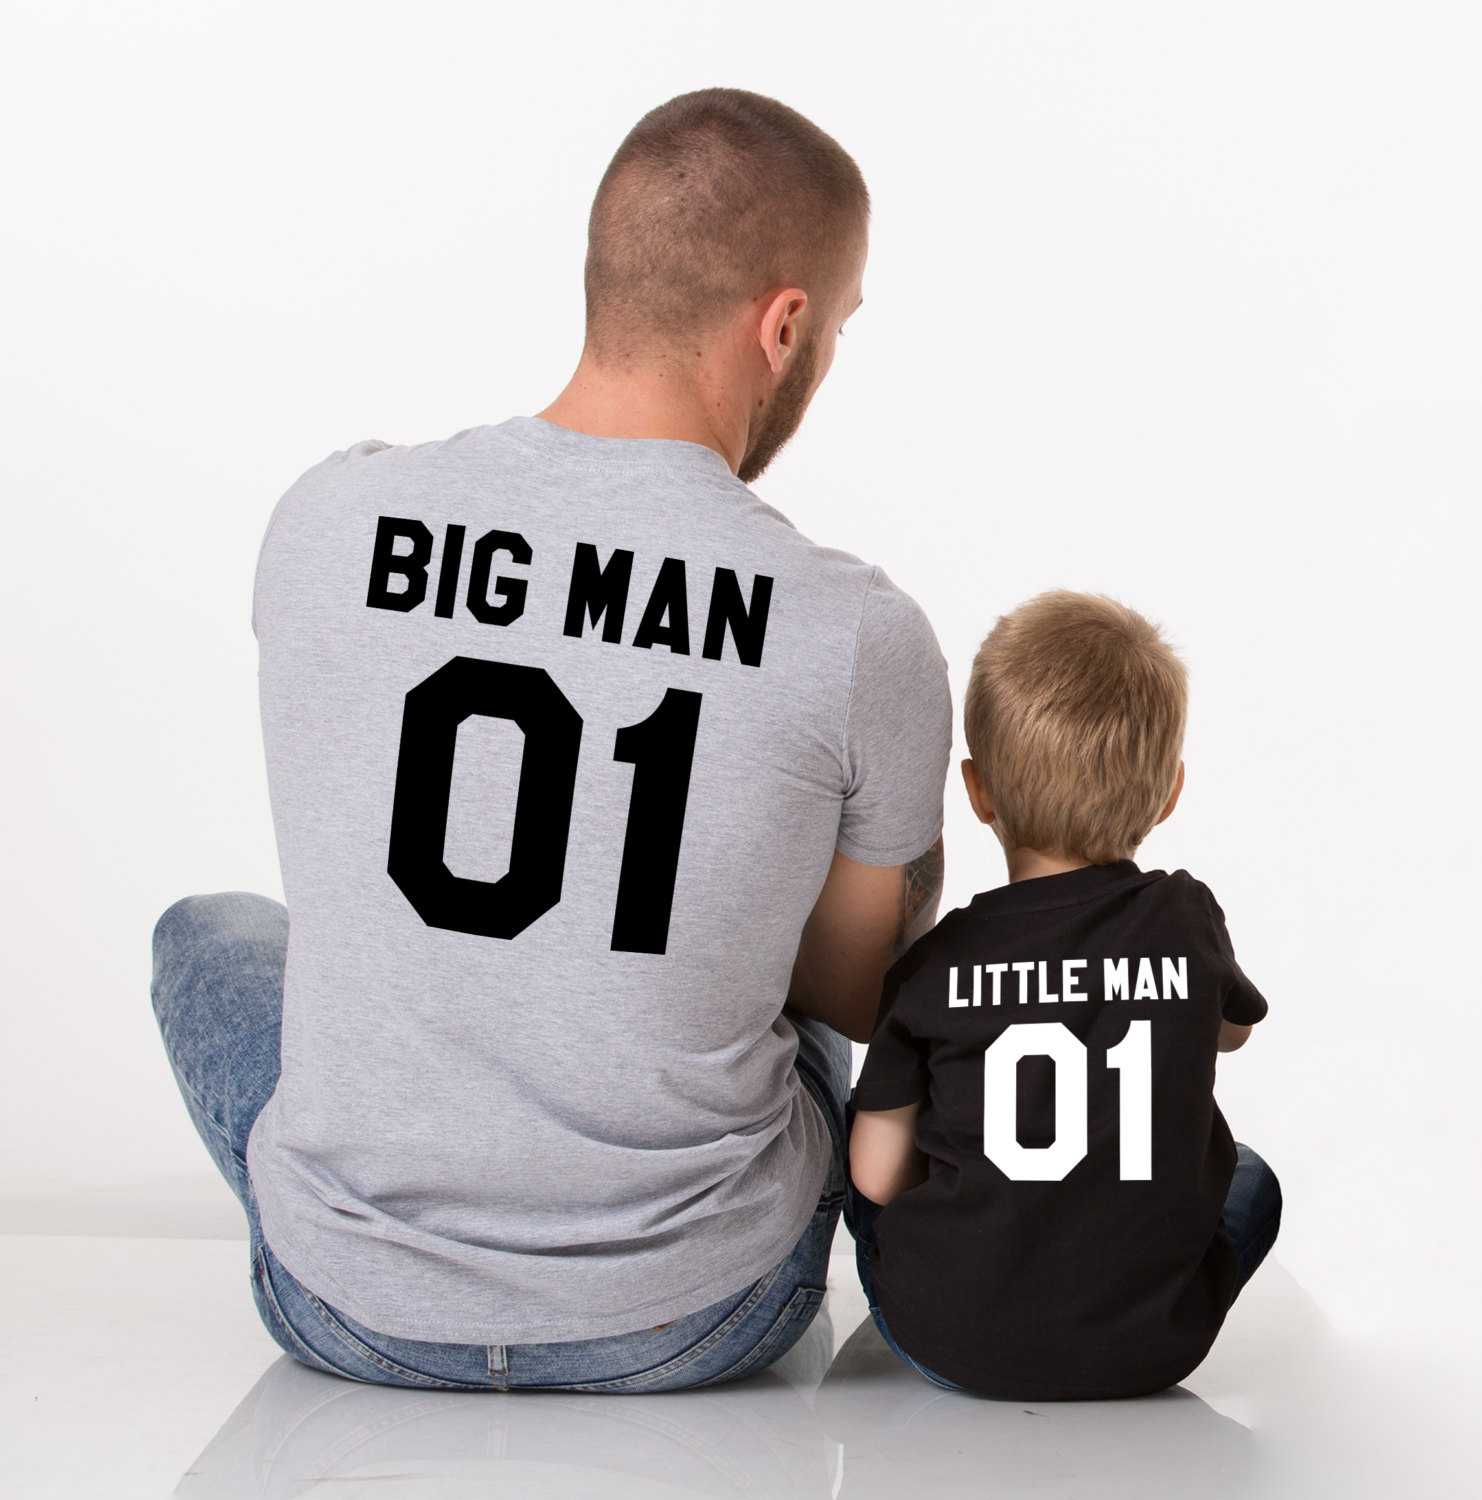 Father son matching shirts, Father and son shirts, Big man lil man father son matching T-shirts, Print is on the back, Big man Lil man 01